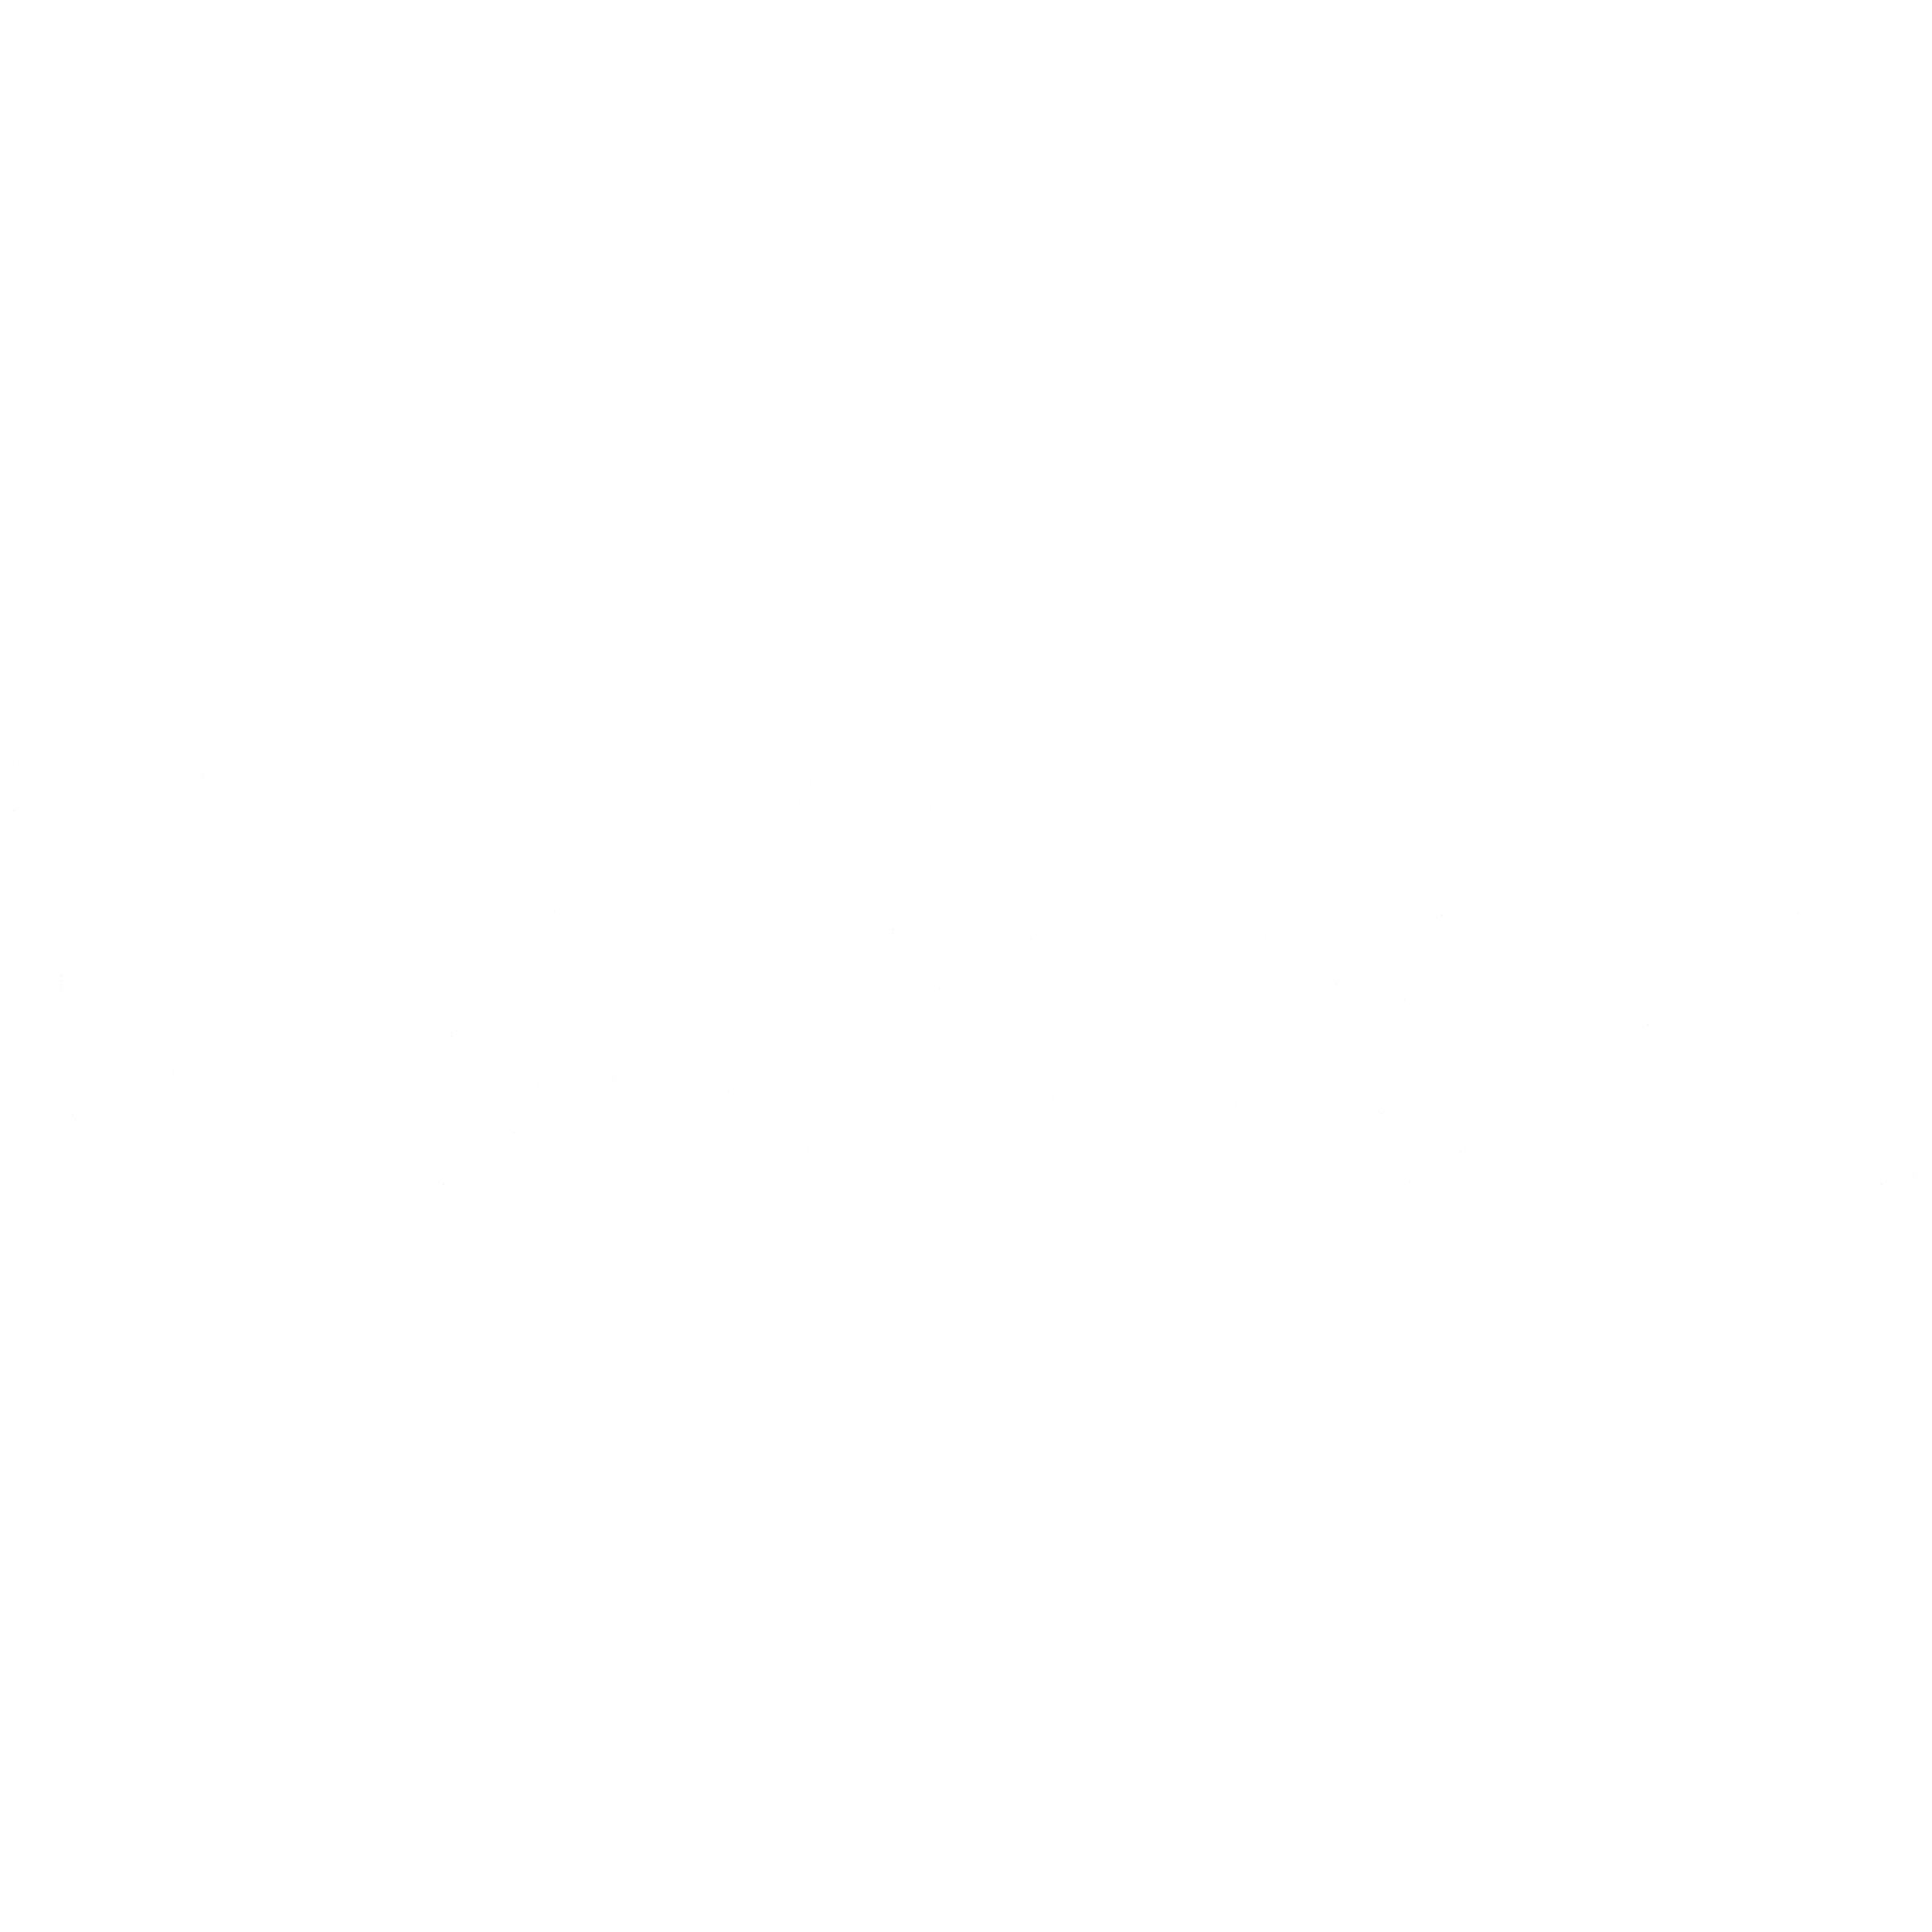 wilson-2-logo-black-and-white.png